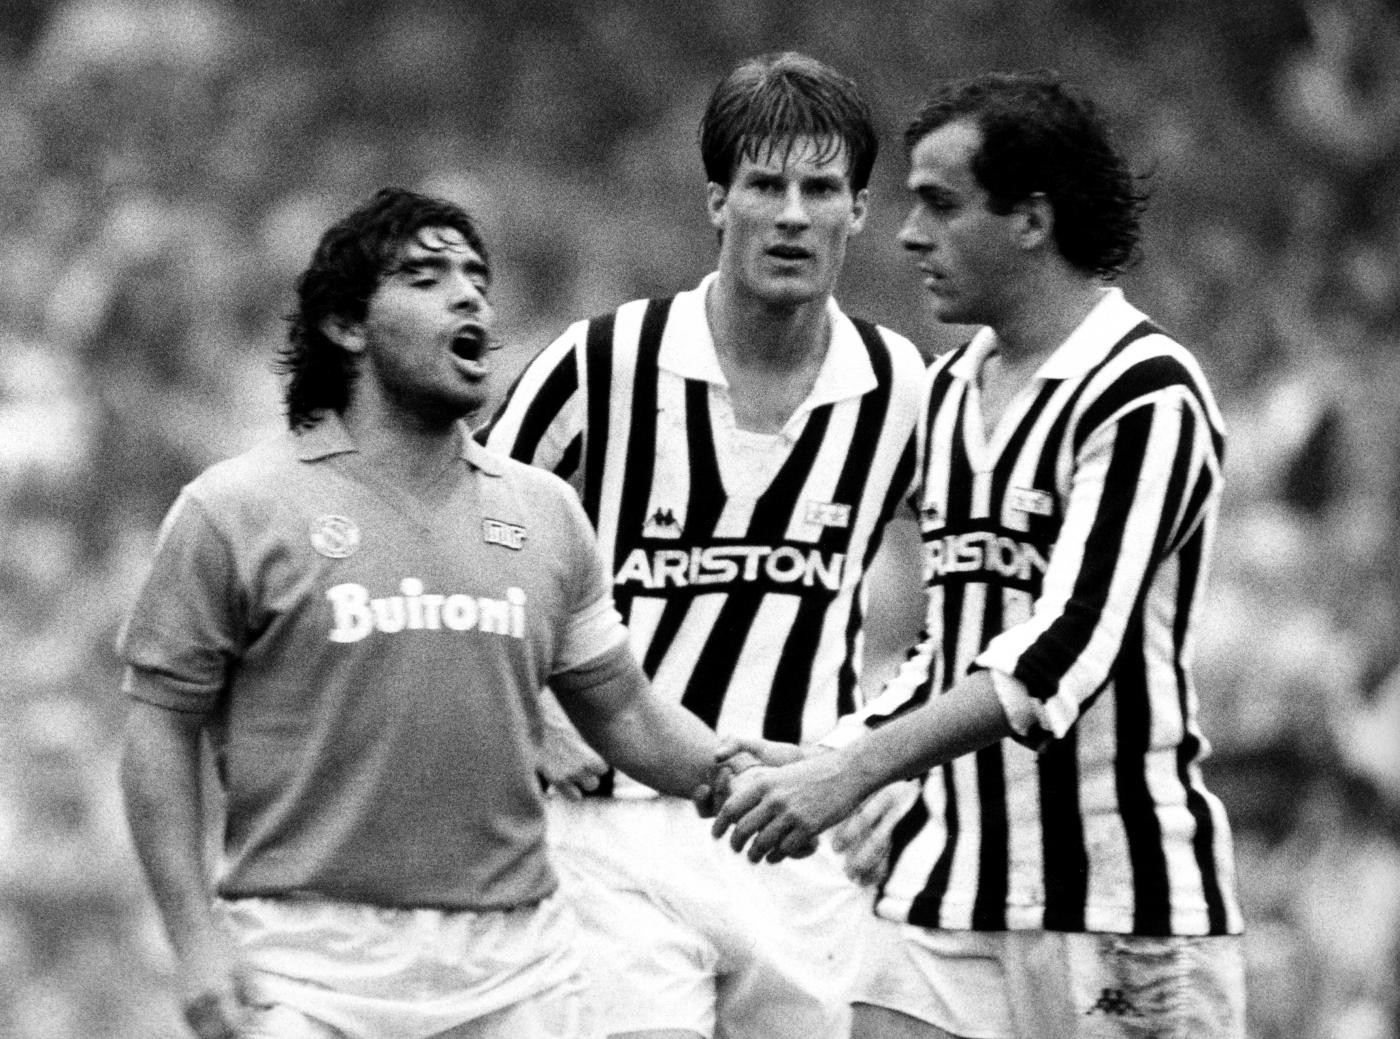 Diego Maradona inspired Napoli to two Serie A titles in three seasons at a time when Juventus were considered unbeatable - their intense rivalry endures to this day ©Getty Images